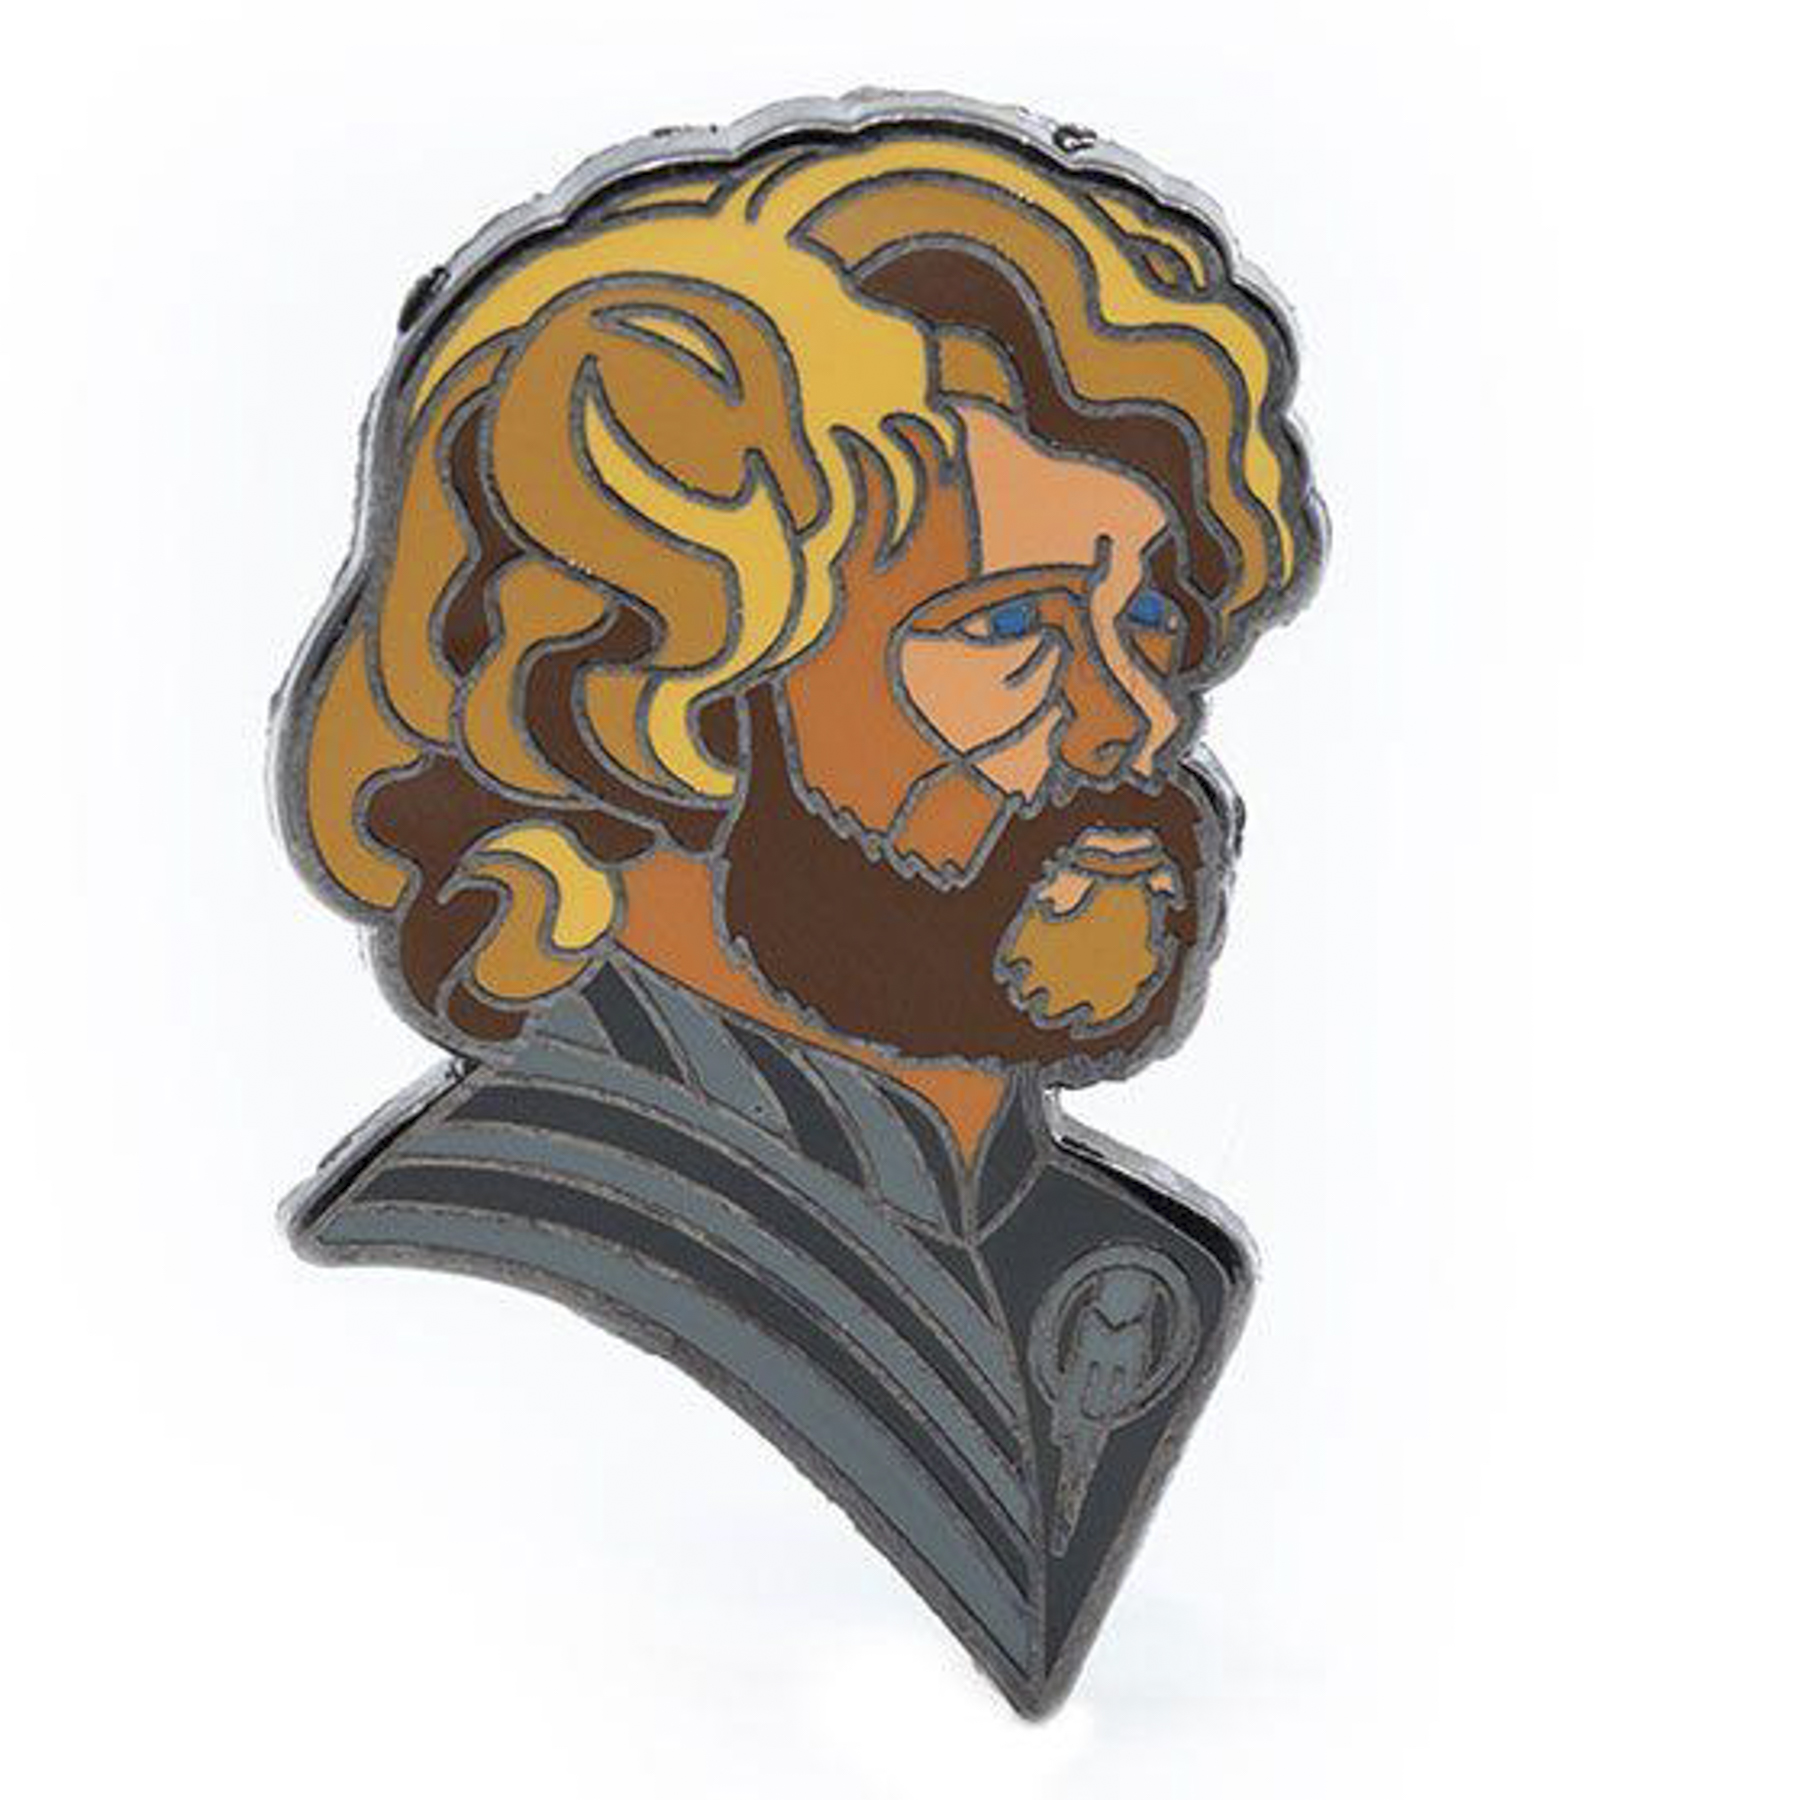 Robert Ball Tyrion Pin from Game of Thrones https://shop.hbo.com/products/robert-ball-tyrion-pin-from-game-of-thrones CR: HBO Shop